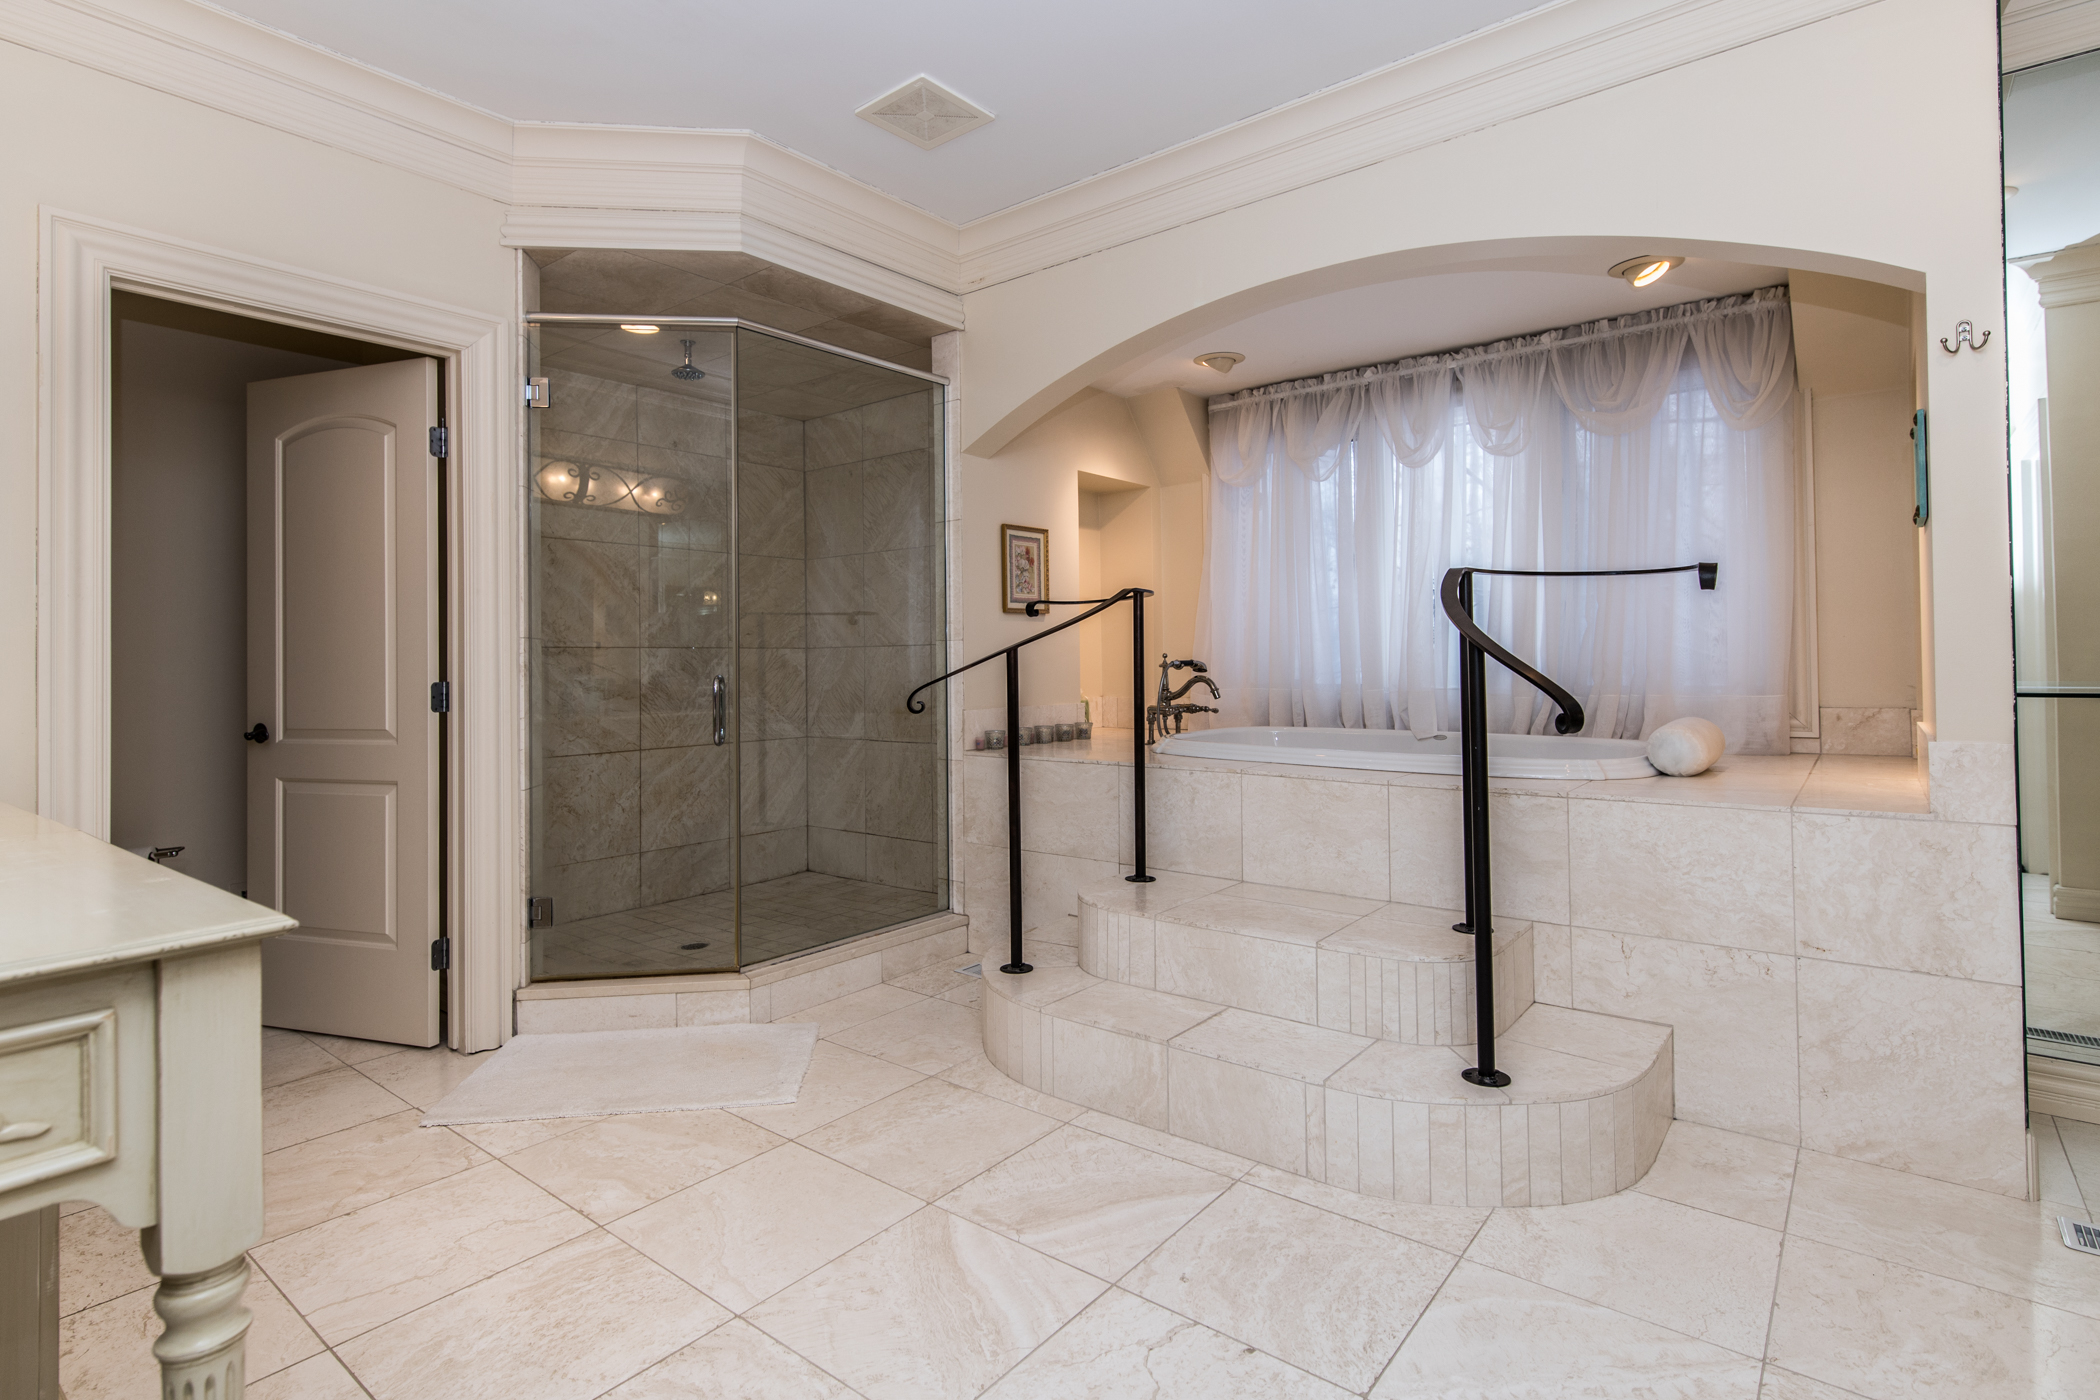 Spa-like glamor master bath